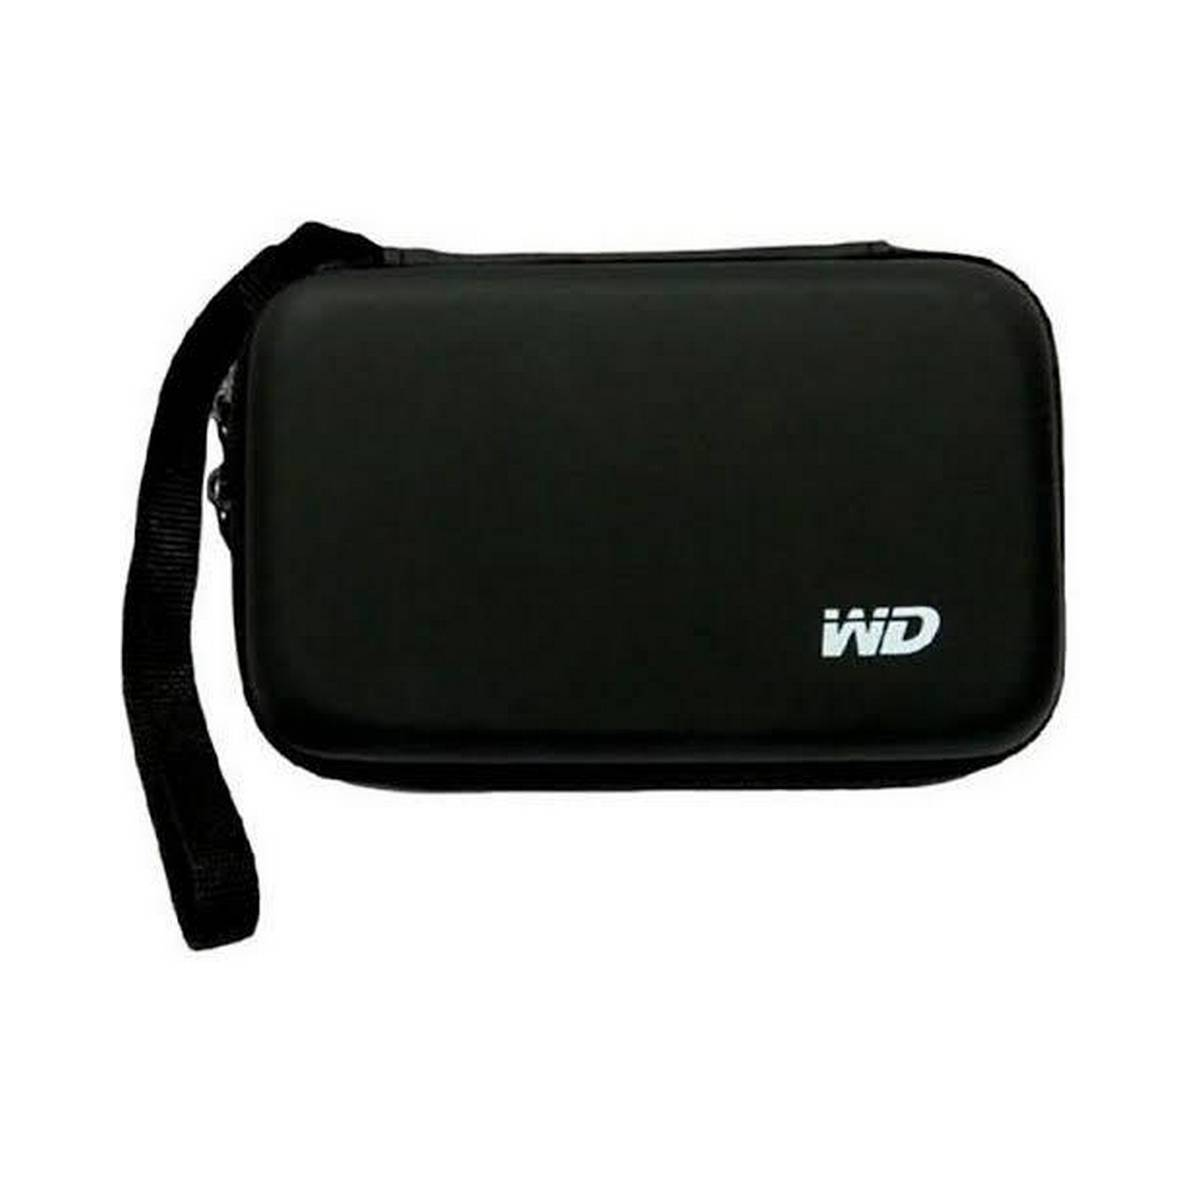 WD Shockproof Hard Carrying Case Pouch Bag For 2.5'' External HDD Hard Drive